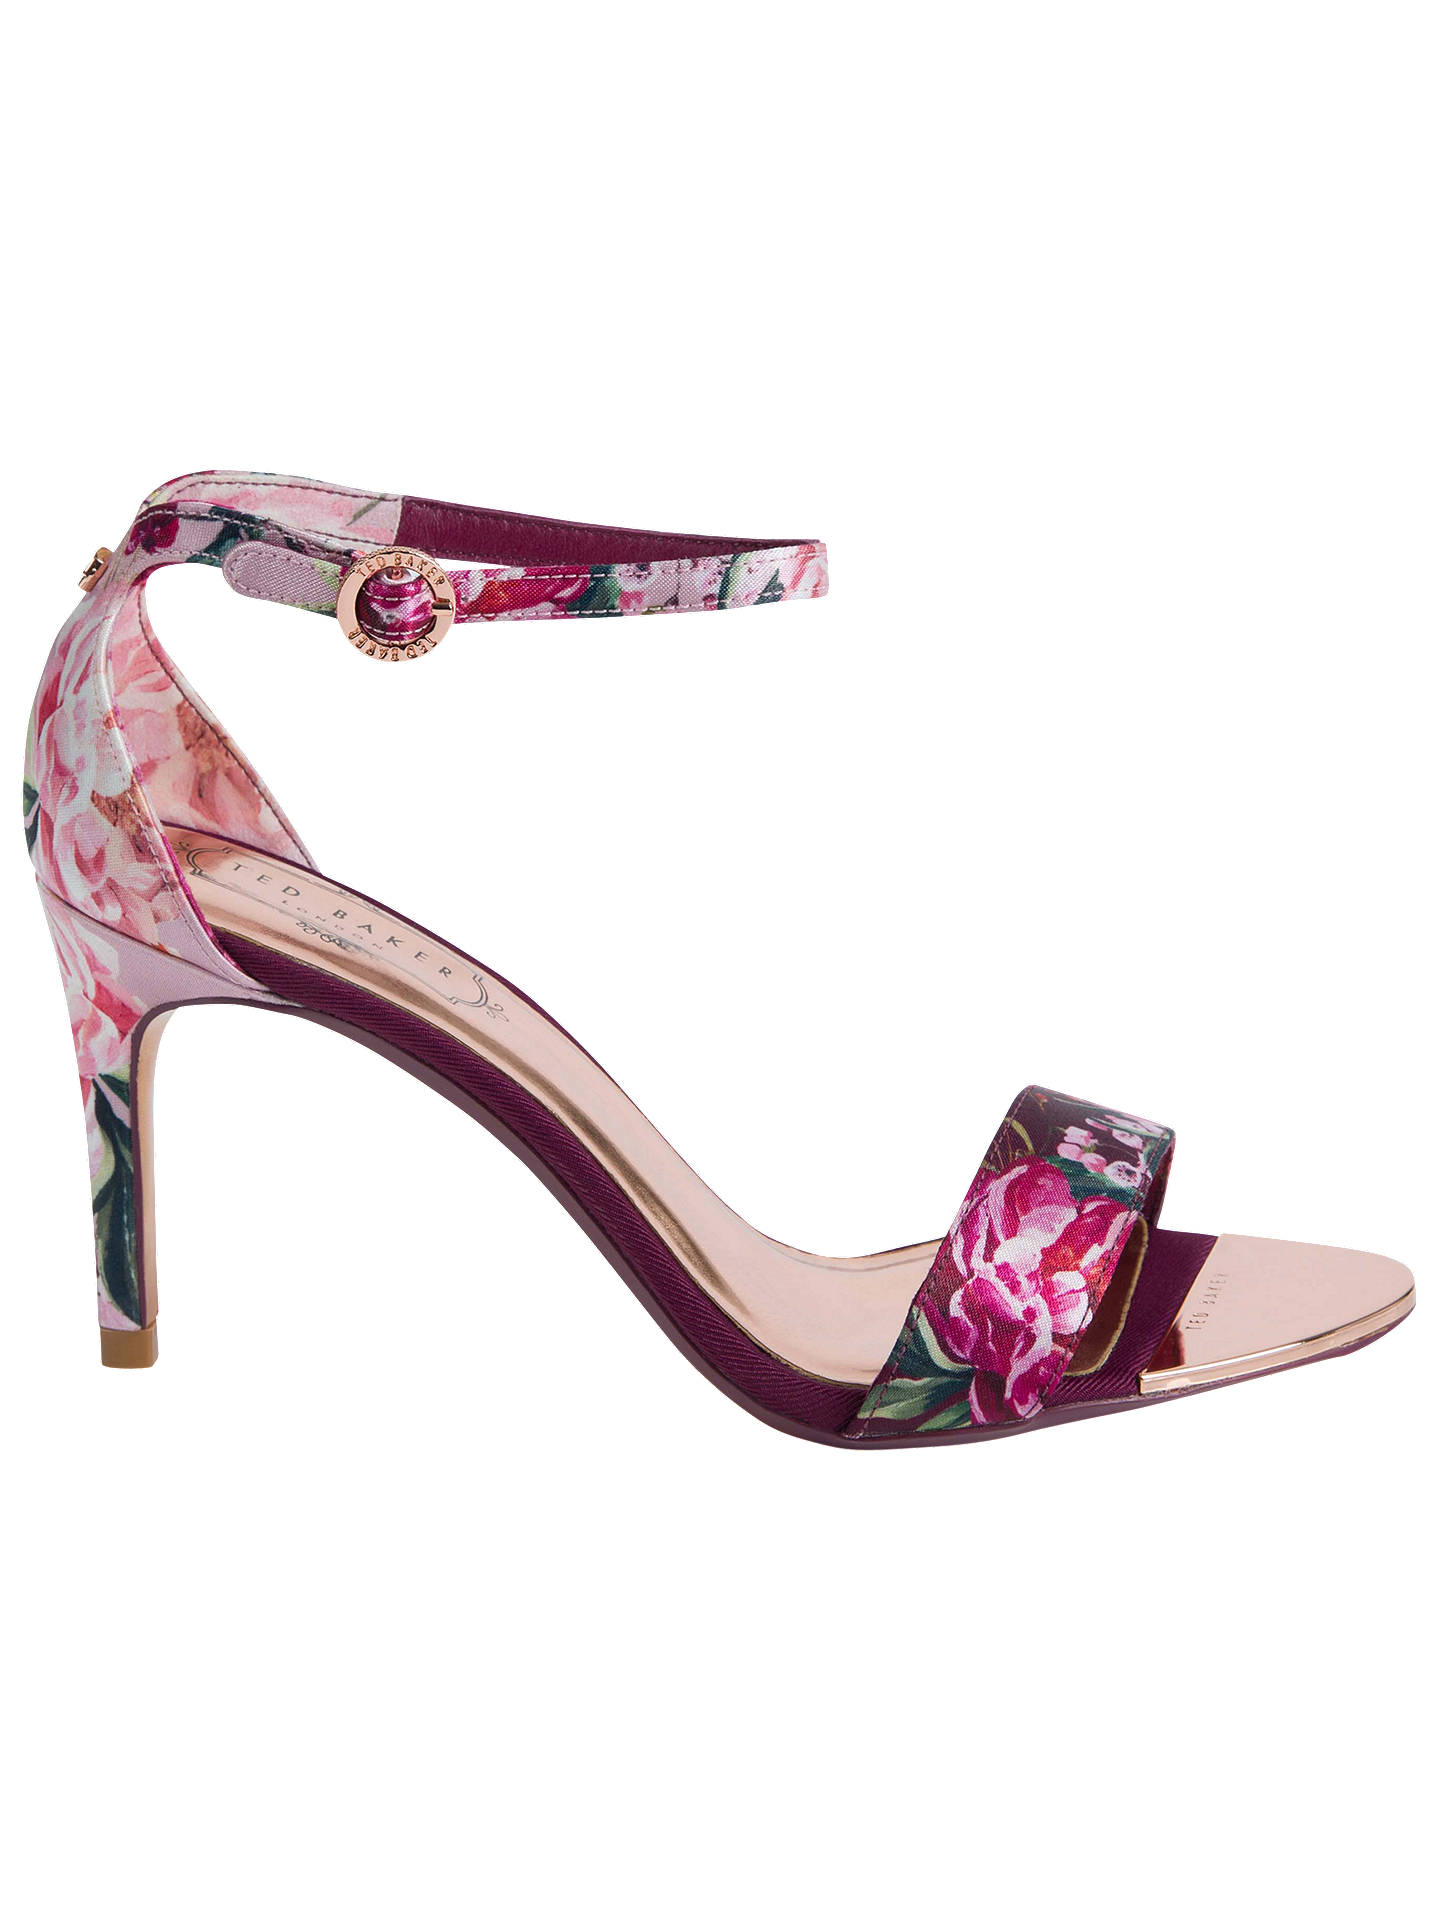 066a8a97070425 Ted Baker Mylli Ankle Strap Stiletto Heel Sandals at John Lewis ...